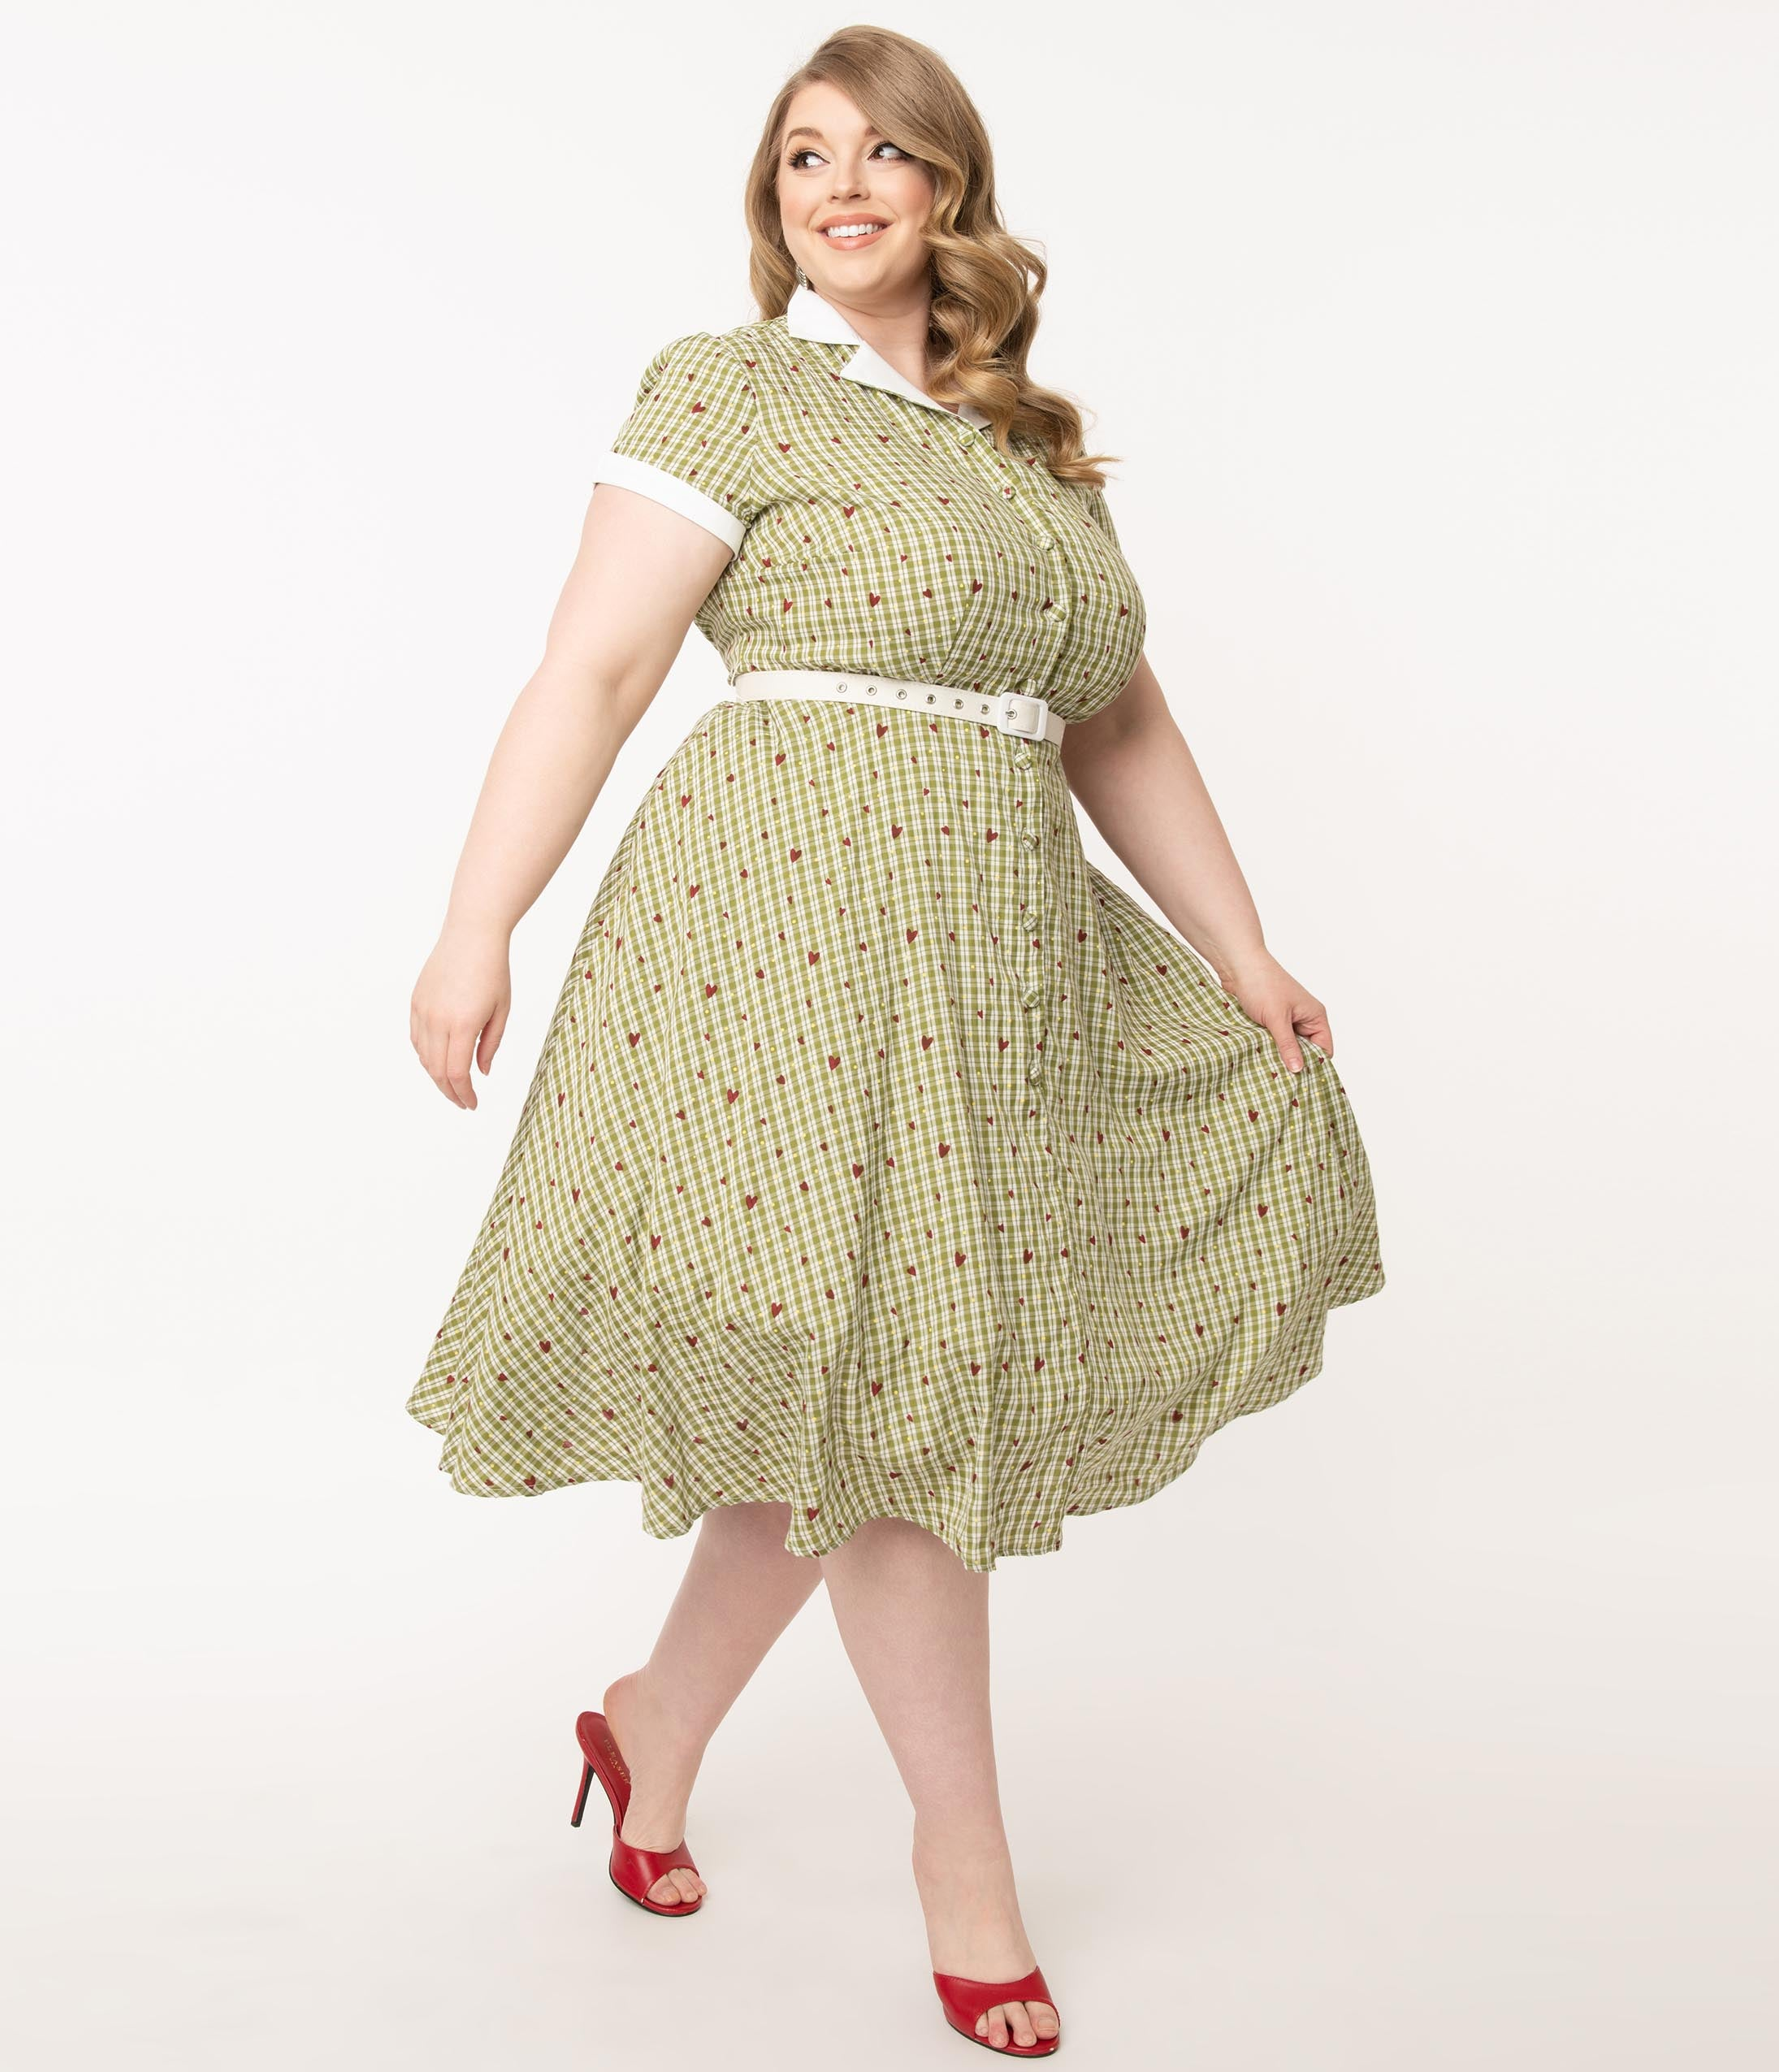 1950s Inspired Fashion: Recreate the Look Unique Vintage Plus Size Green Plaid  Heart Print Alexis Swing Dress $78.00 AT vintagedancer.com